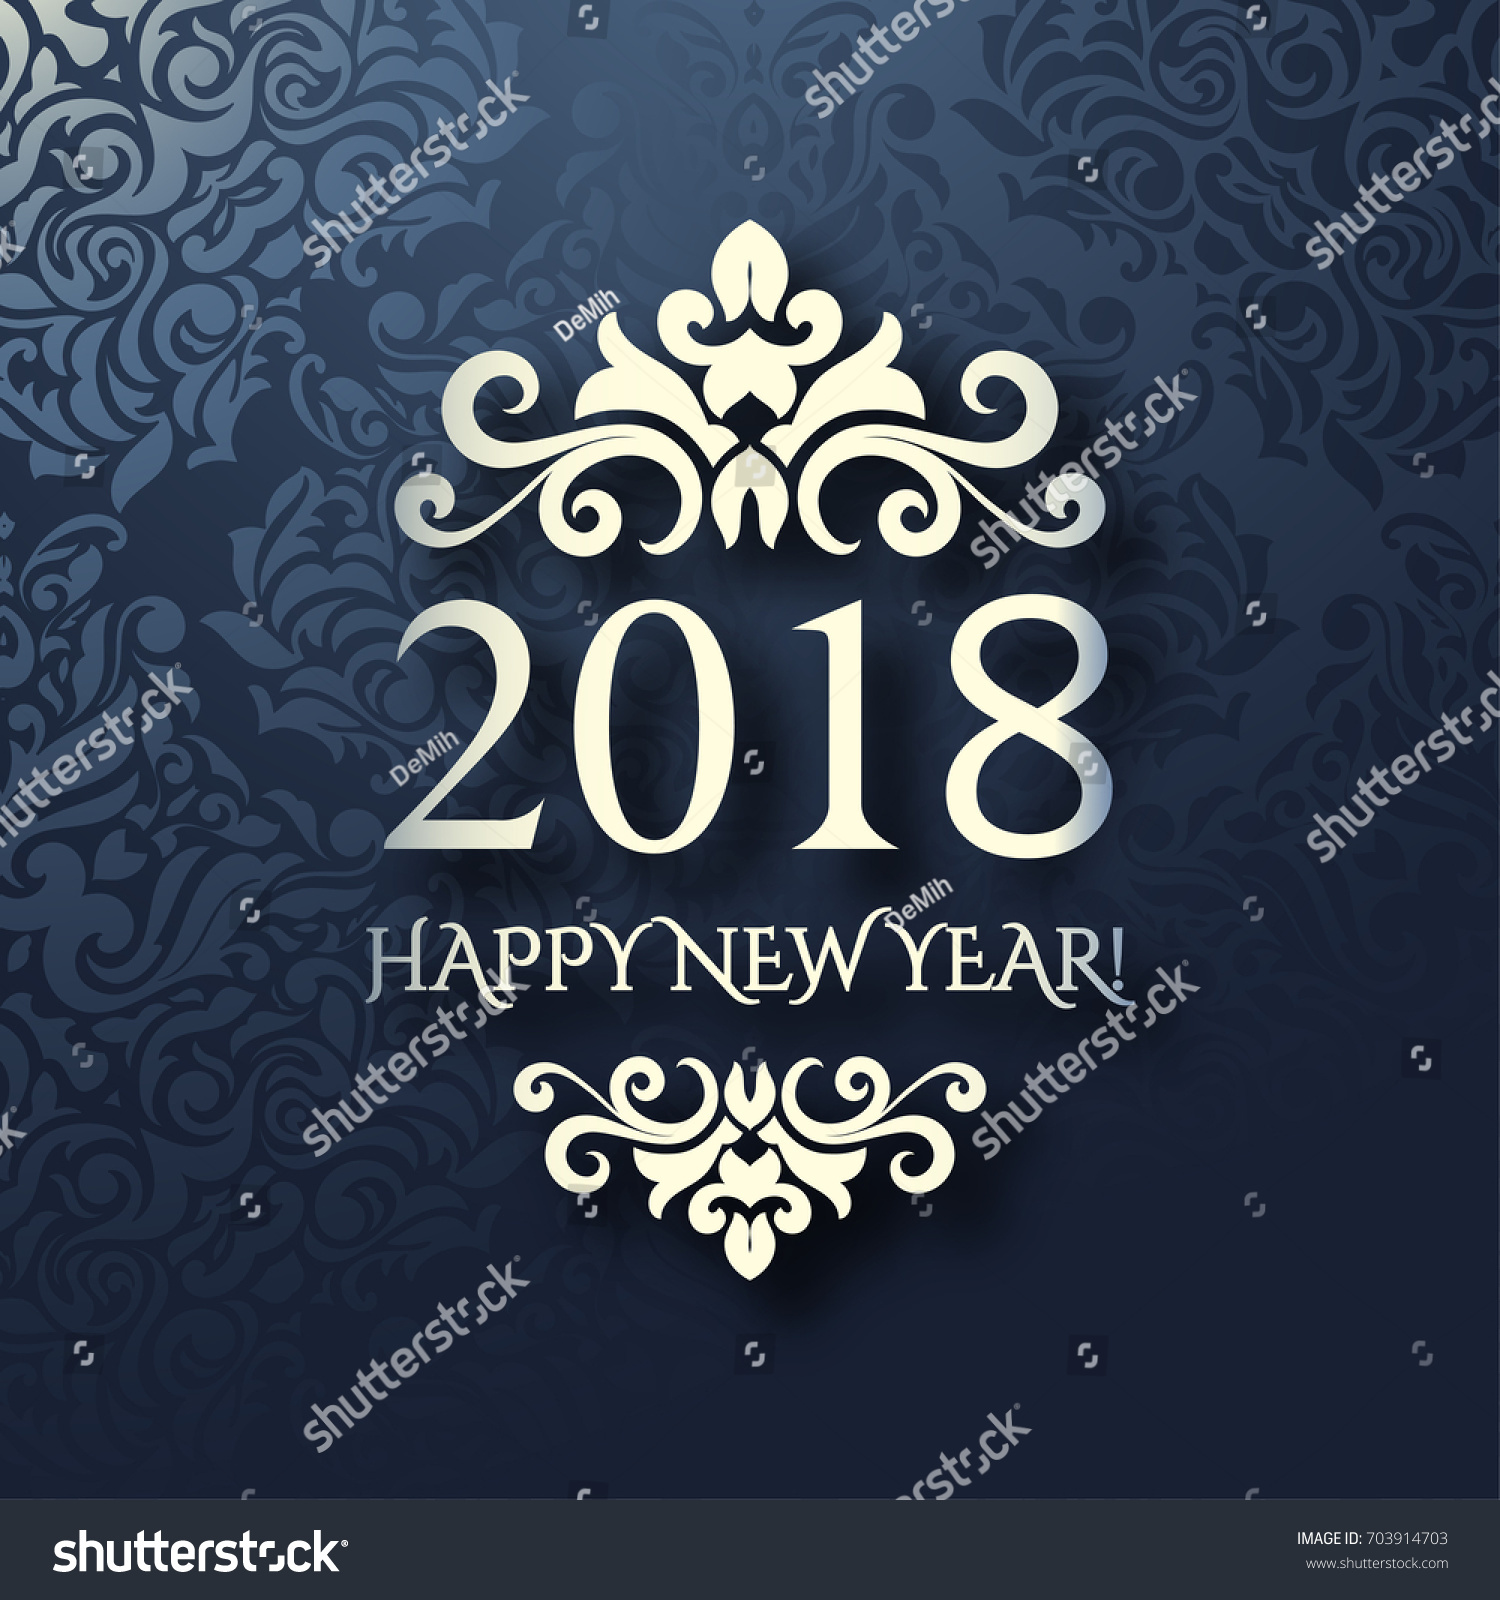 new year card with blue background and silver frame luxury design 2018